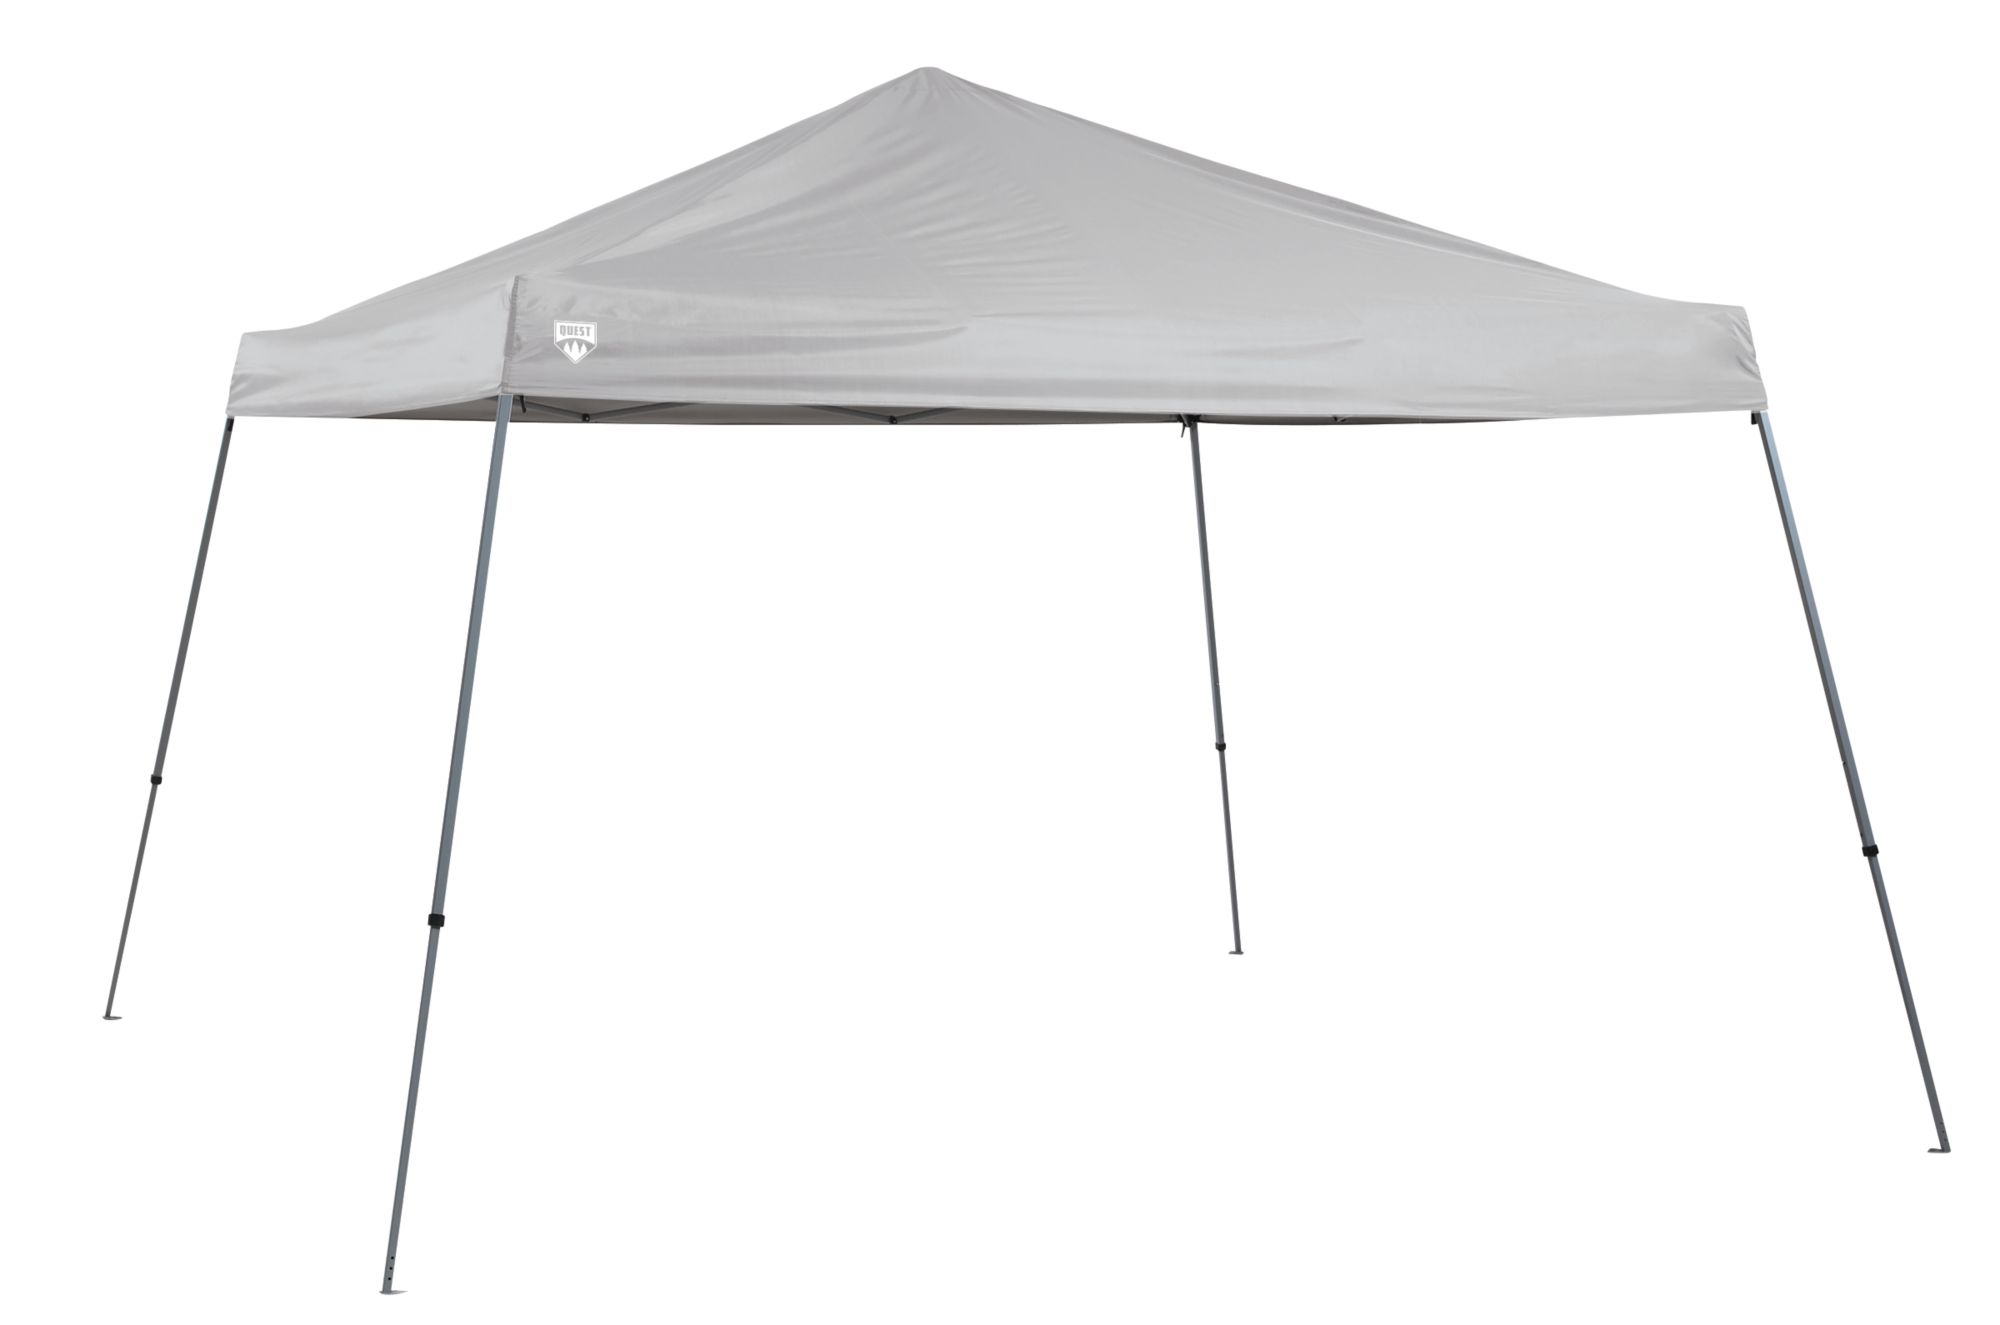 Quest 12u0027 x 12u0027 Instant Up Canopy  sc 1 st  DICKu0027S Sporting Goods & Canopy Tents u0026 Portable Shelters | DICKu0027S Sporting Goods